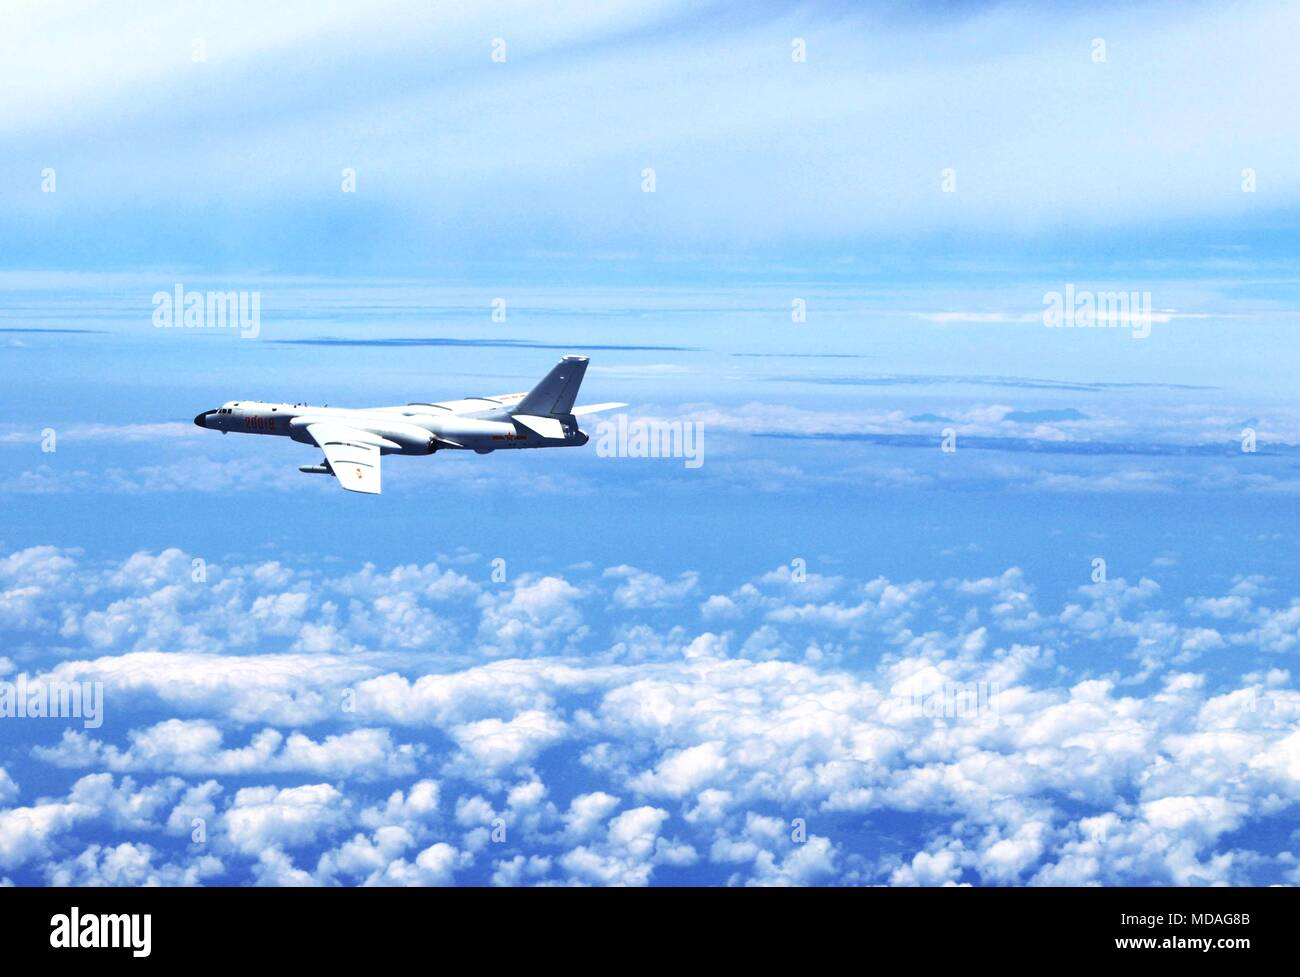 Beijing, China. 19th Apr, 2018. An H-6K bomber conducts island patrol in April 19, 2018. A Chinese air force formation conducted island patrols recently during a training exercise with an aim of improving the ability to safeguard national sovereignty and territorial integrity, an air force spokesperson confirmed Thursday. Credit: Zhai Peisong/Xinhua/Alamy Live News - Stock Image